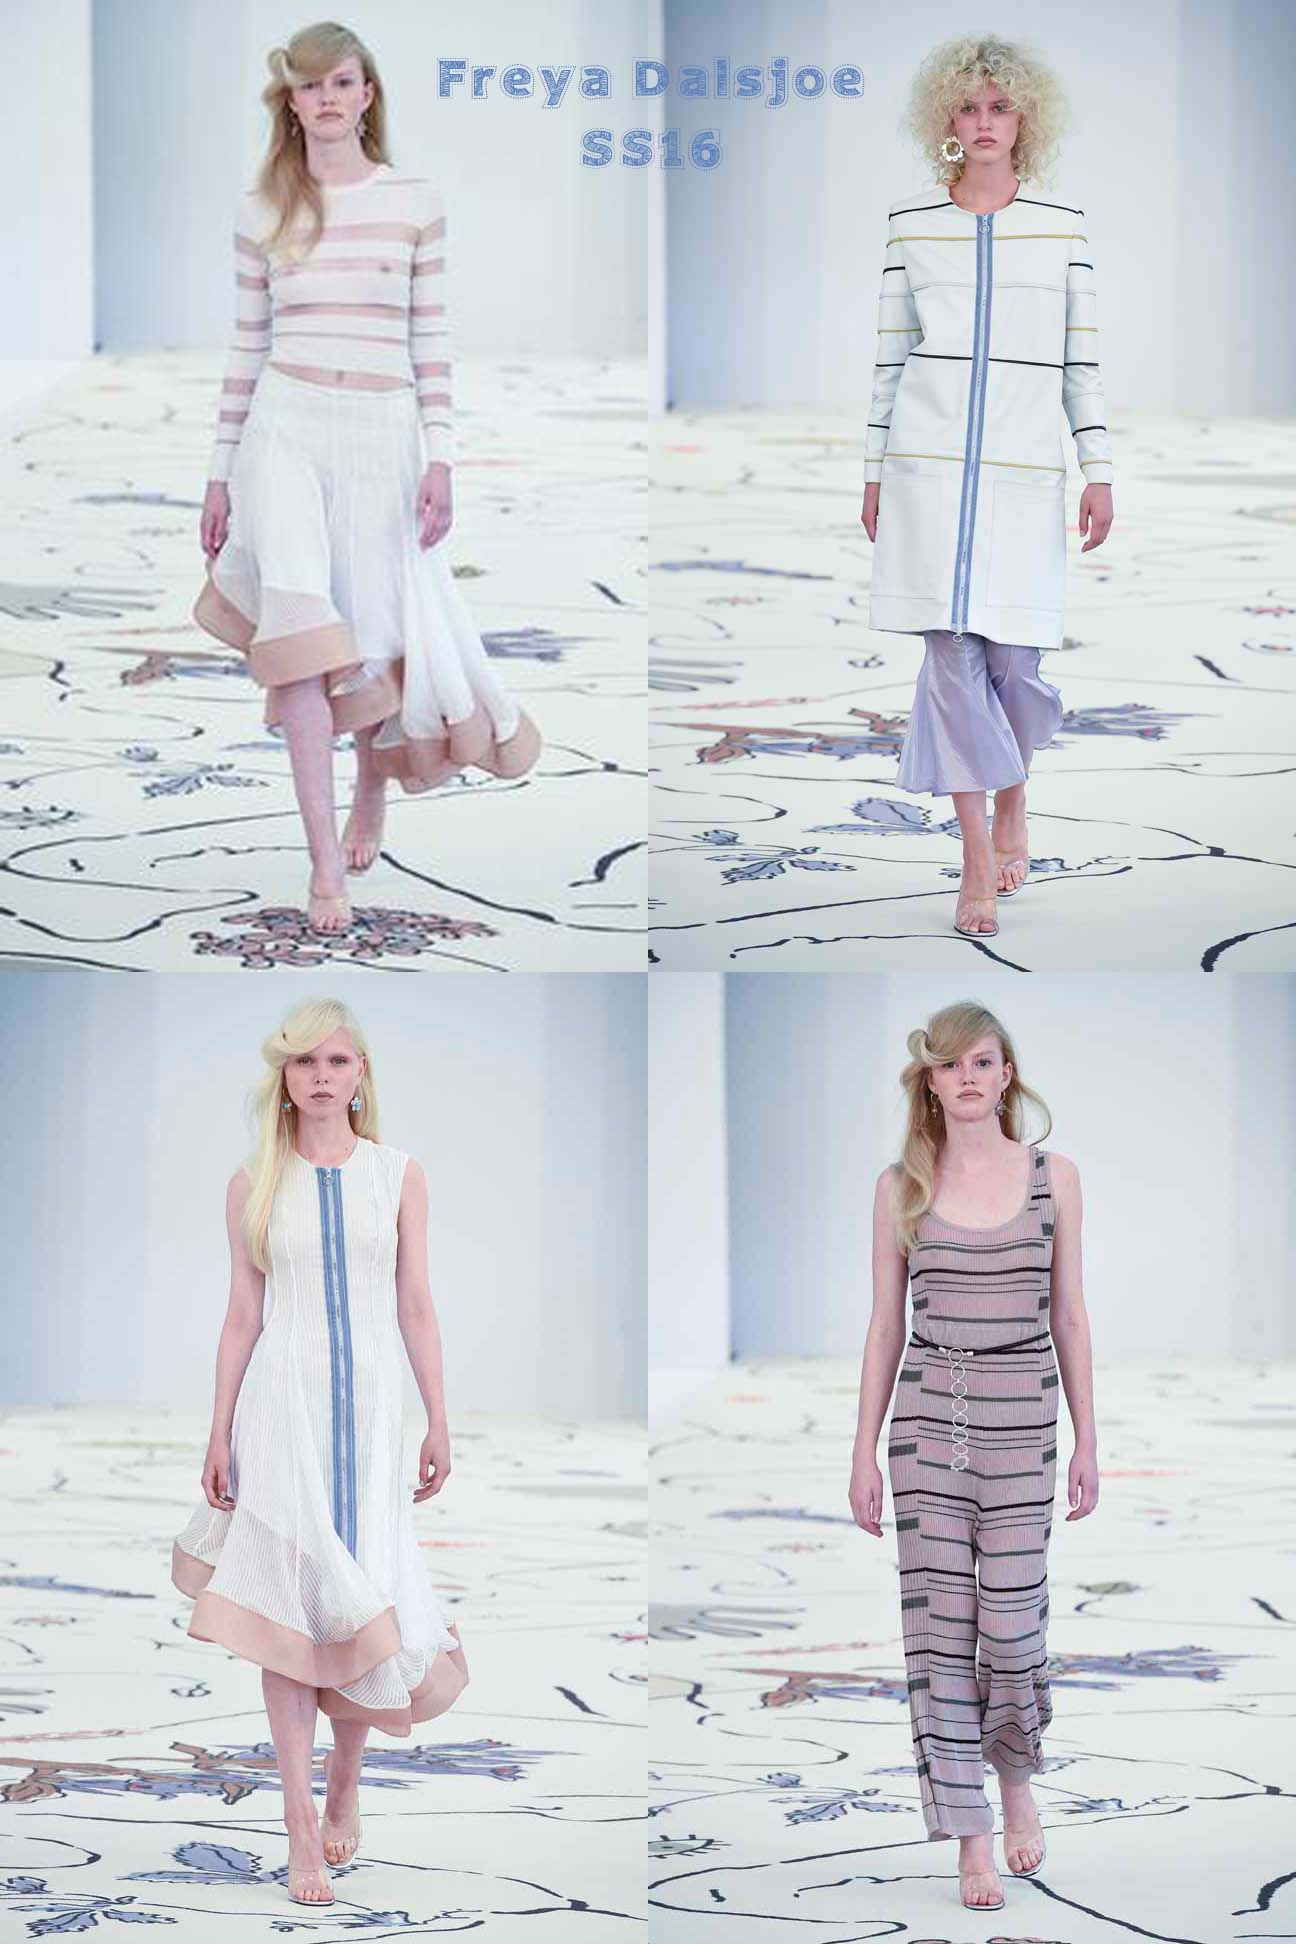 Freya Dalsjoe showed a delicate SS16 Collection at Copenhagen fashion week.